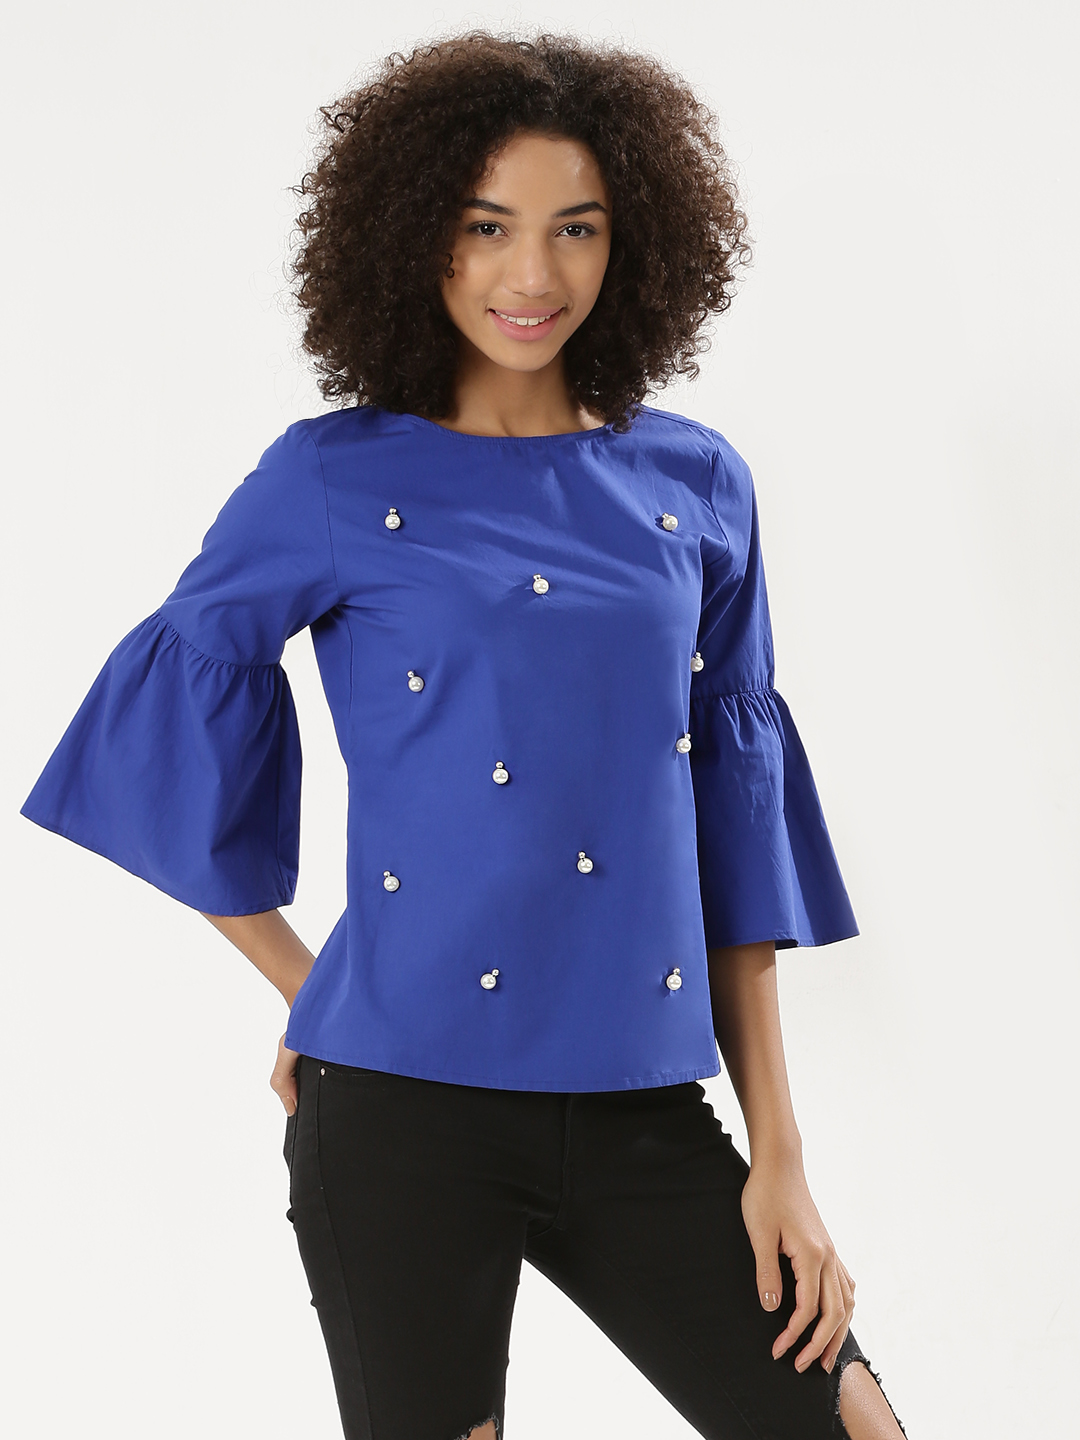 Ri-Dress Blue RIDRESS Flared Sleeve Blouse With Pearl Detail 1